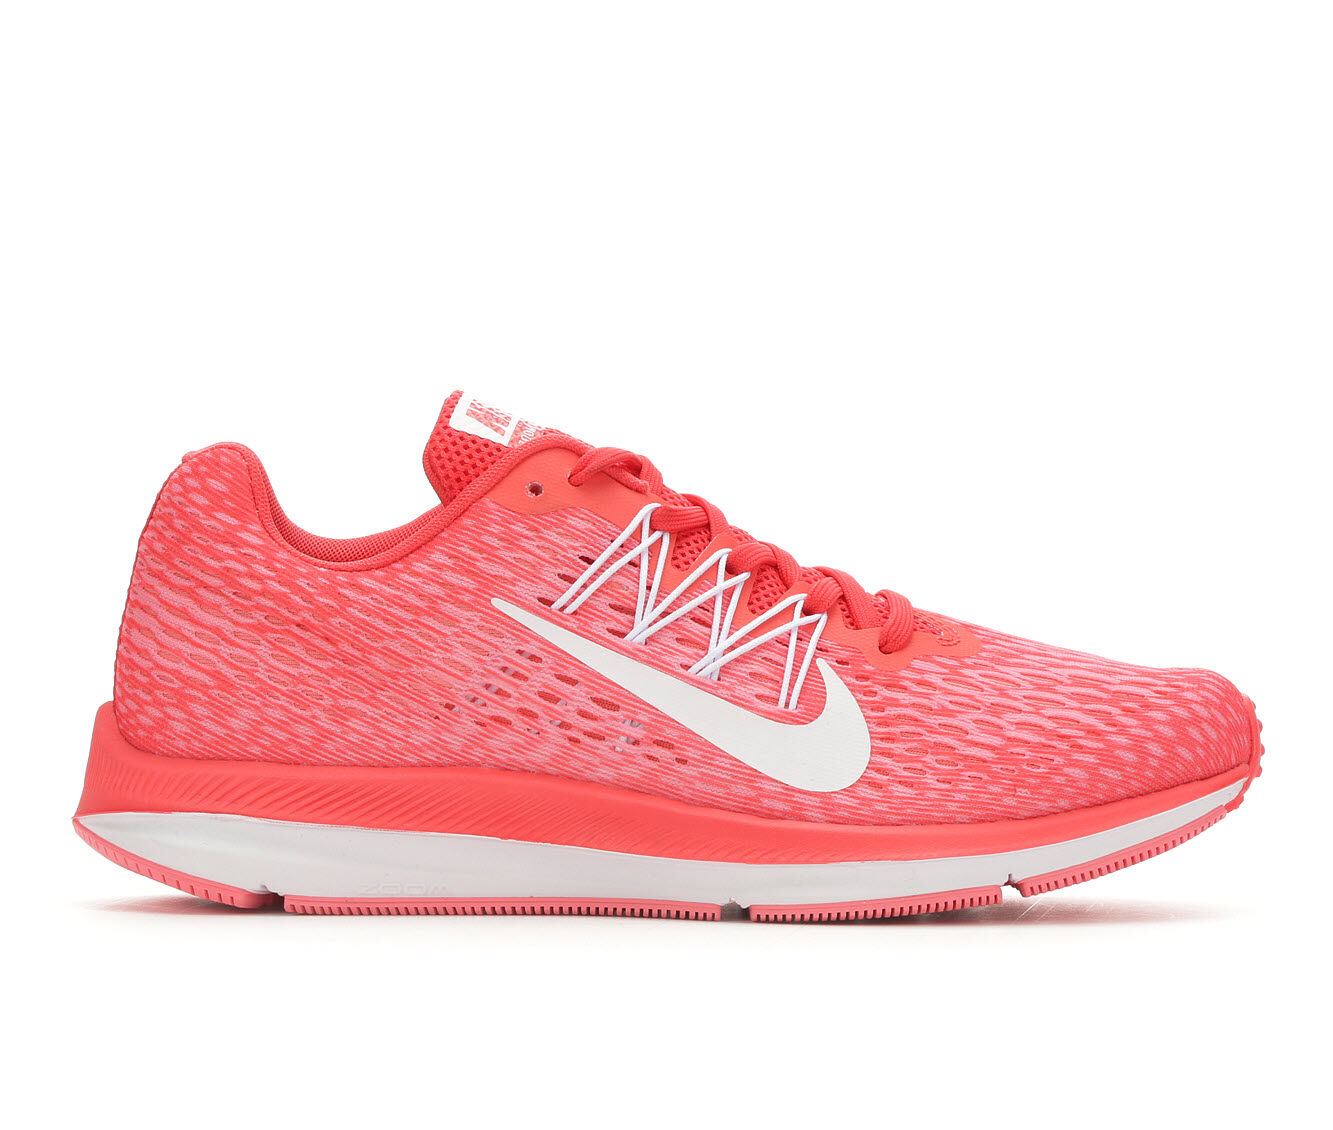 competitive price Women's Nike Zoom Winflo 5 Running Shoes Ember/Wht/Pink